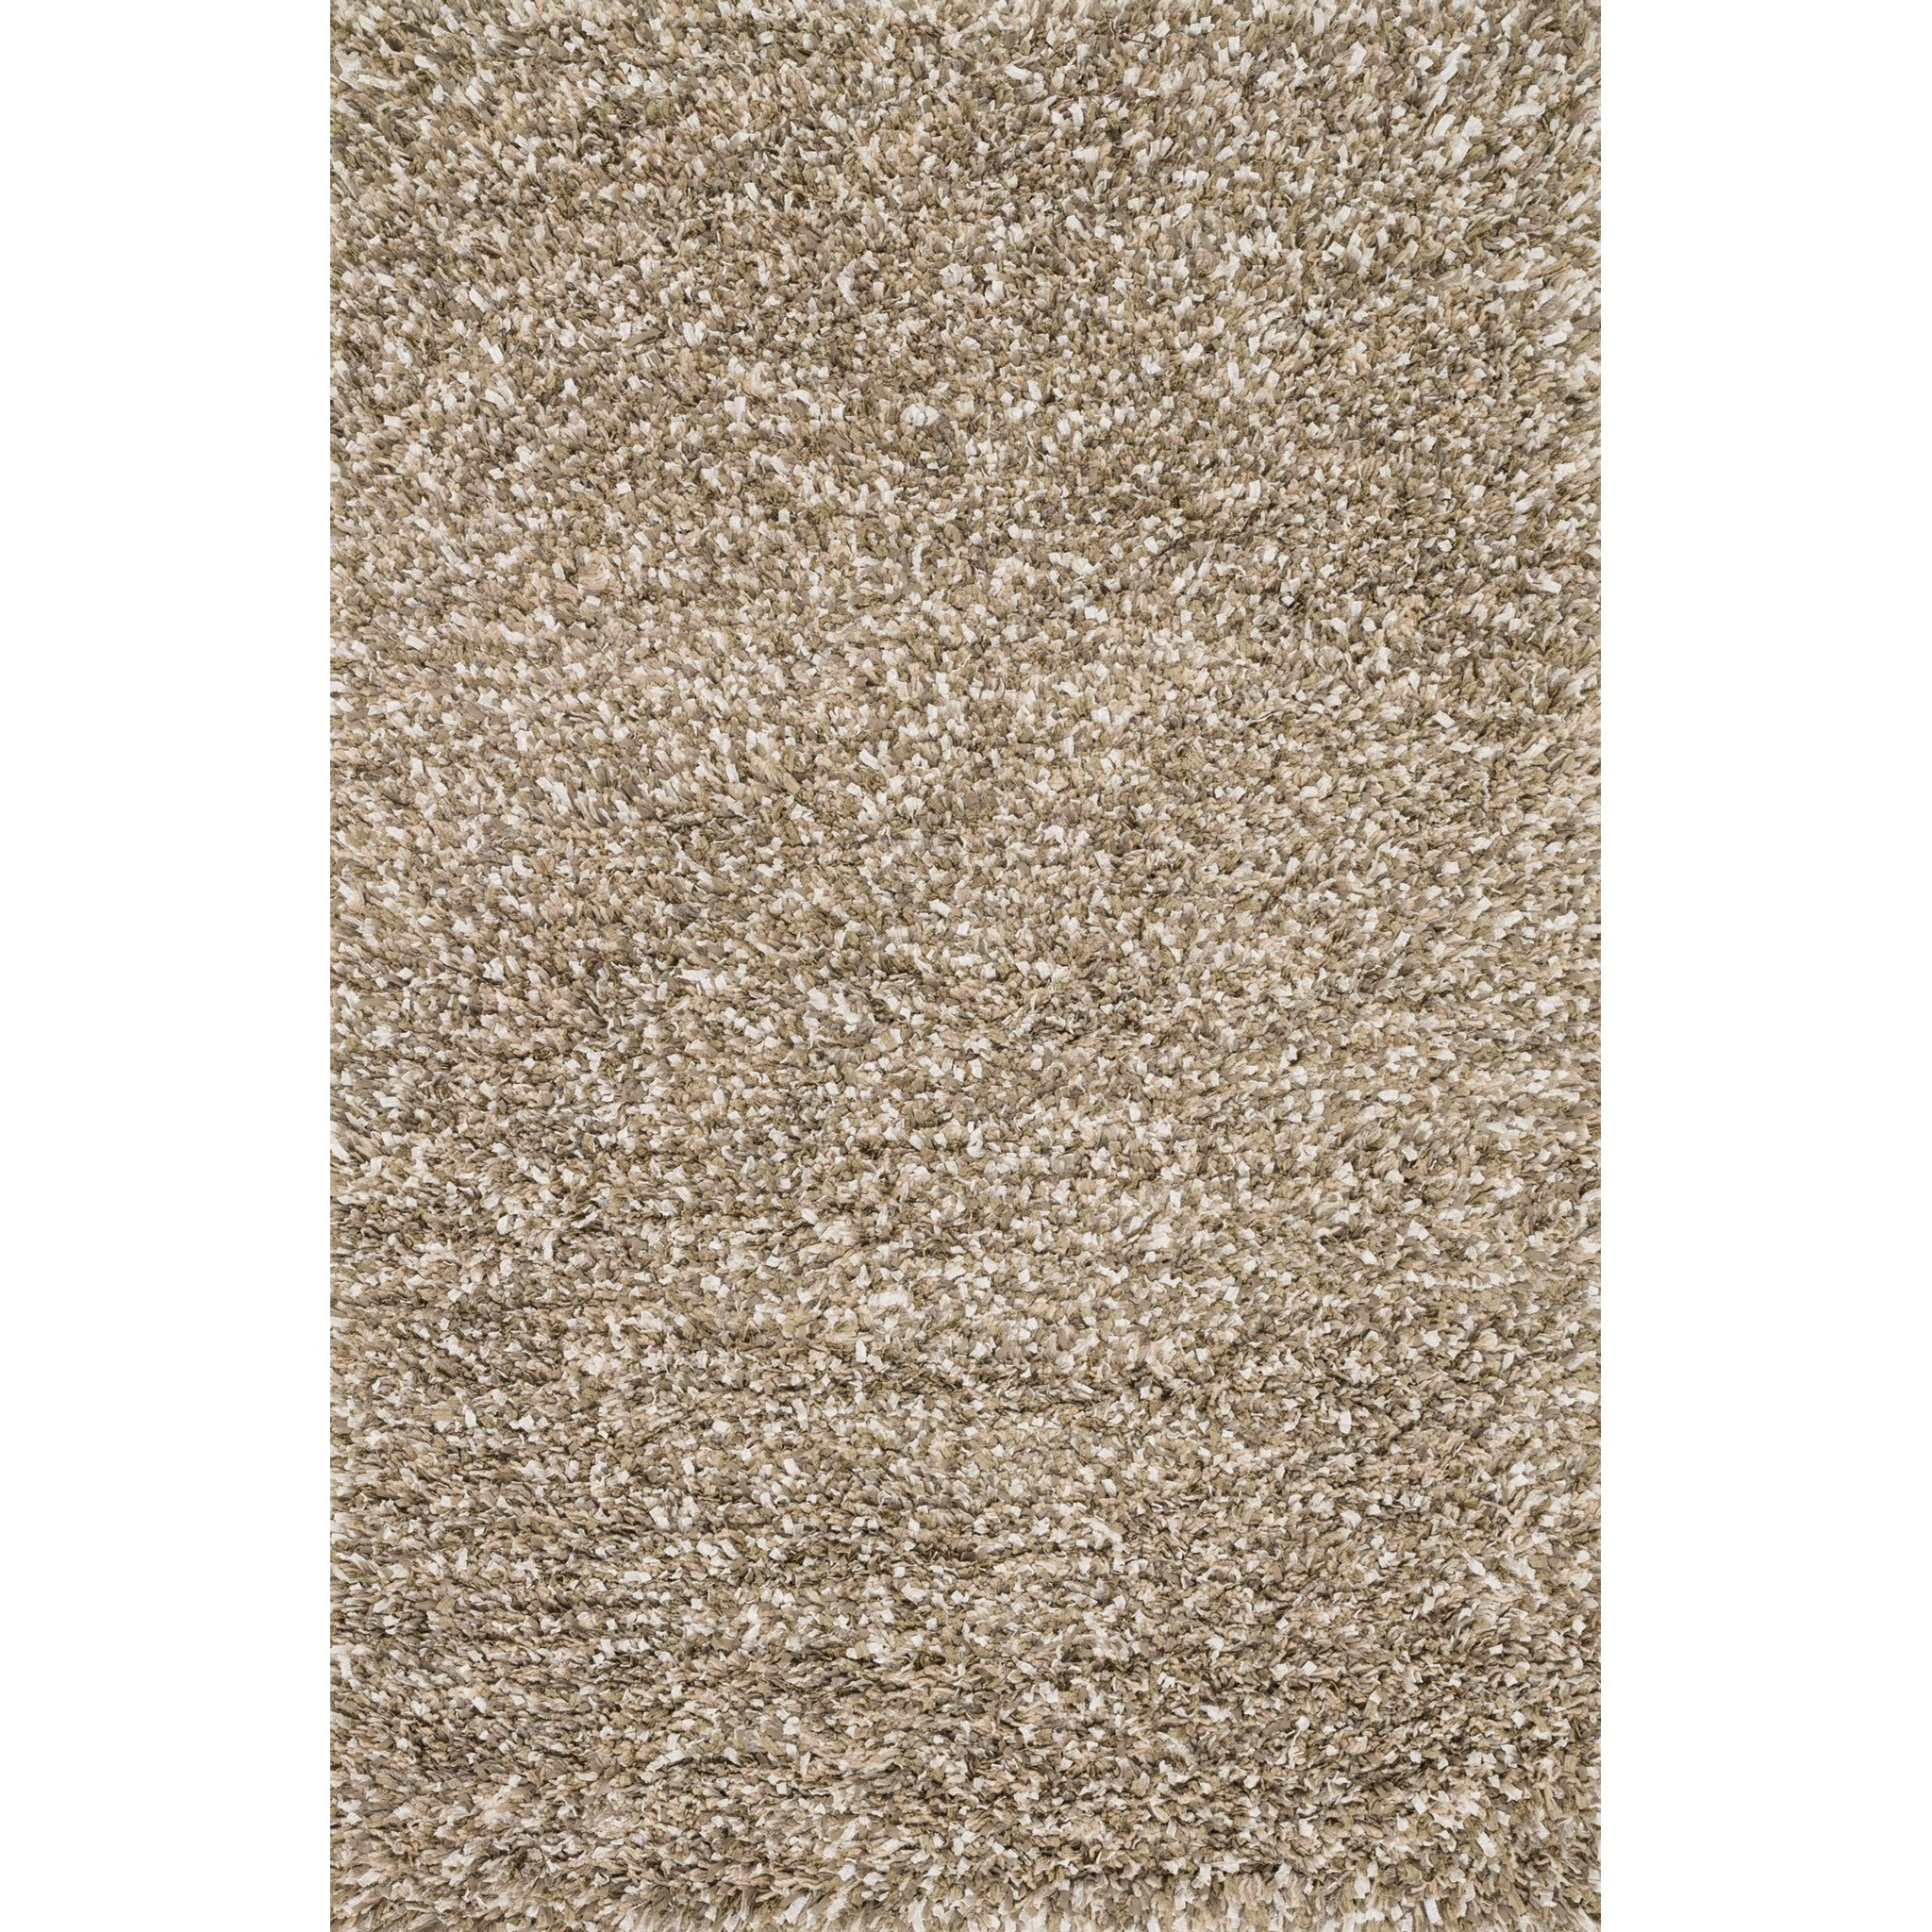 """Loloi Rugs Cleo Shag 7'-6"""" x 9'-6"""" Area Rug - Item Number: CLEOCO-01SN007696"""